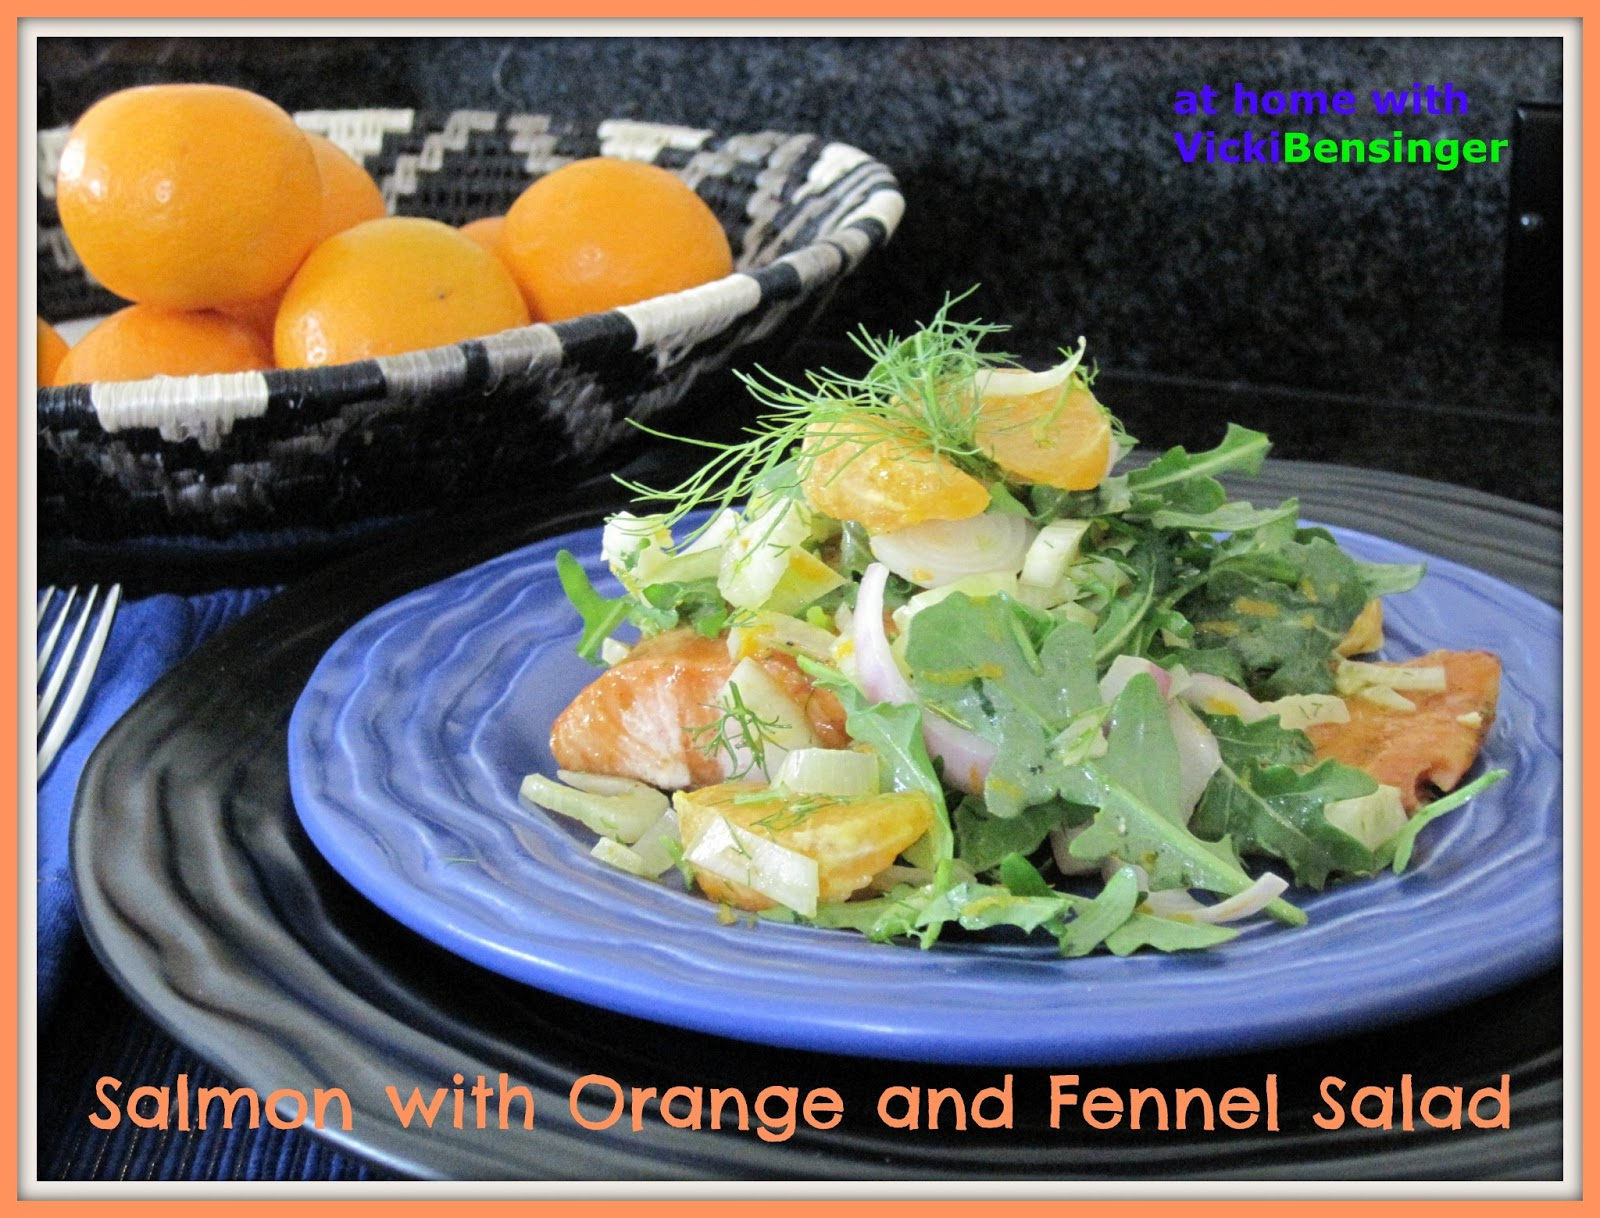 Salmon with Orange and Fennel Salad – At Home with Vicki Bensinger